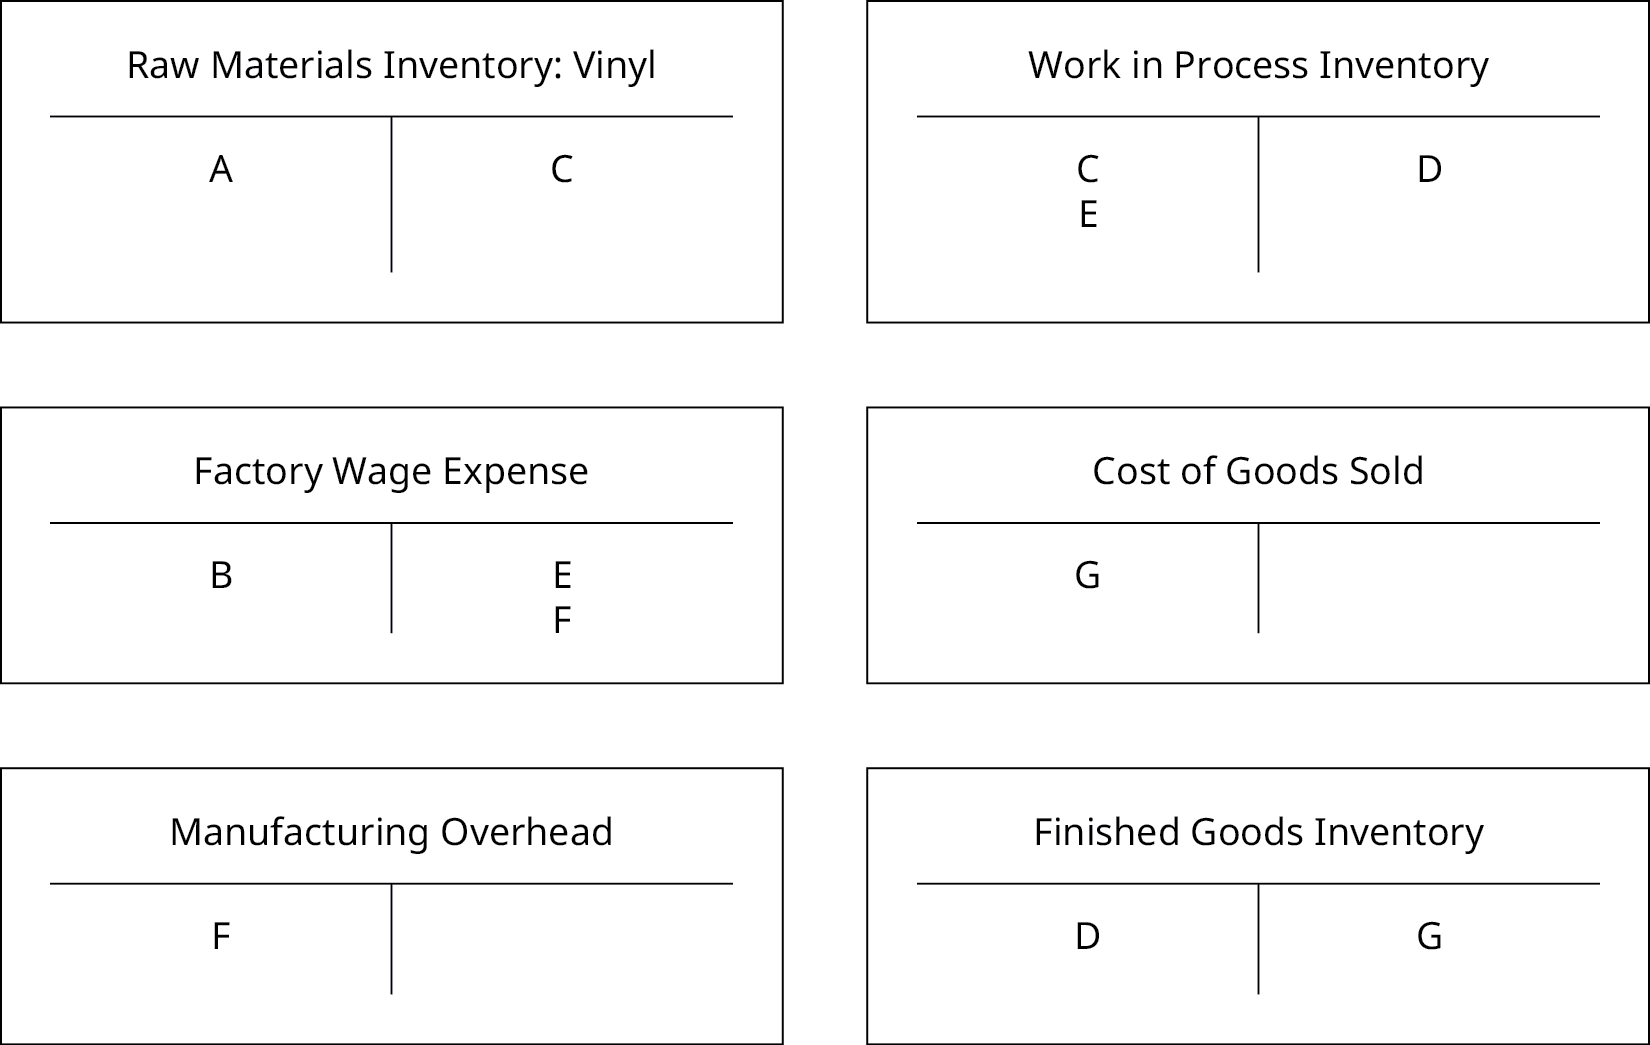 """The six T-Accounts: one each for """"Raw Materials Inventory: Vinyl"""", """"Factory Wage Expense"""", """"Manufacturing Overhead"""", """"Work in Process Inventory"""", """"Cost of Goods Sold"""", and """"Finished Goods Inventory"""" are now filled out. """"Raw Materials Inventory: Vinyl"""" has an A on the debit side and a C on the credit side, """"Factory Wage Expense"""" has a B on the debit side, and an E and F on the credit side, """"Manufacturing Overhead"""" has an F on the debit side, """"Work in Process Inventory"""" has a C and E on the debit side and a D on the credit side, """"Cost of Goods Sold"""" has a G on the debit side, and """"Finished Goods Inventory"""" has a D on the debit and G on the credit side."""